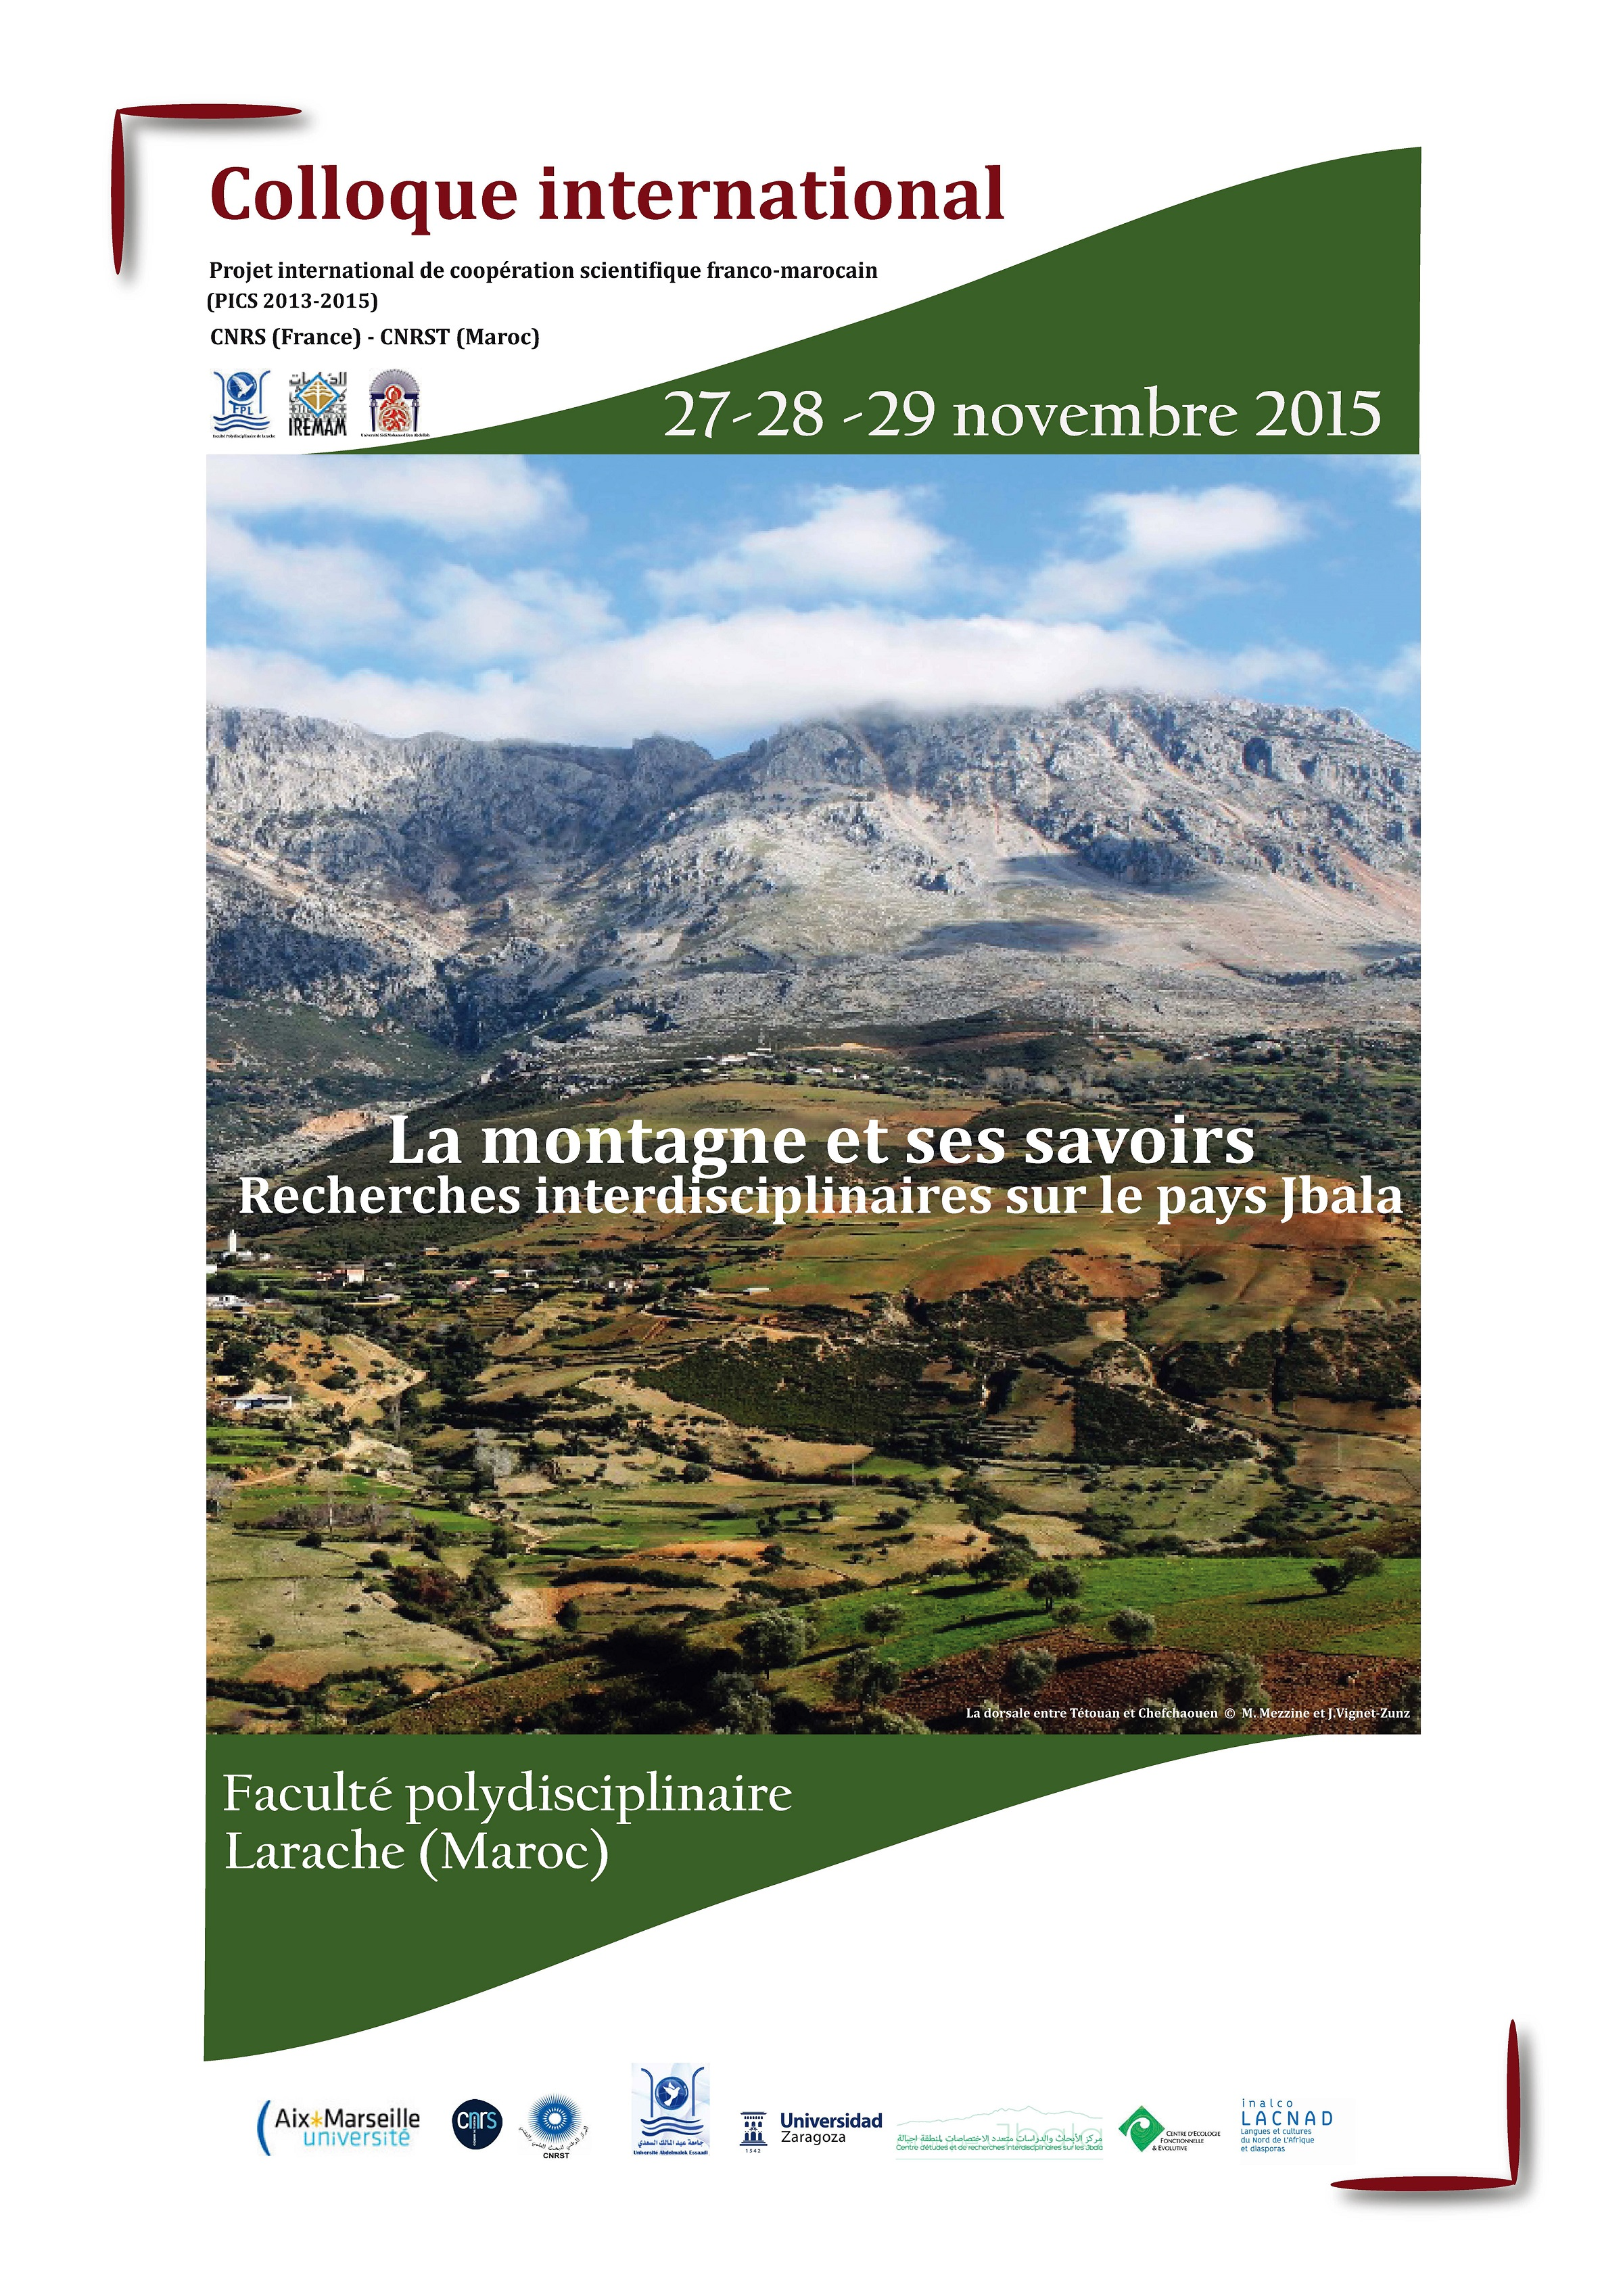 https://f.hypotheses.org/wp-content/blogs.dir/1262/files/2015/11/colloque-novembre-2015.jpg